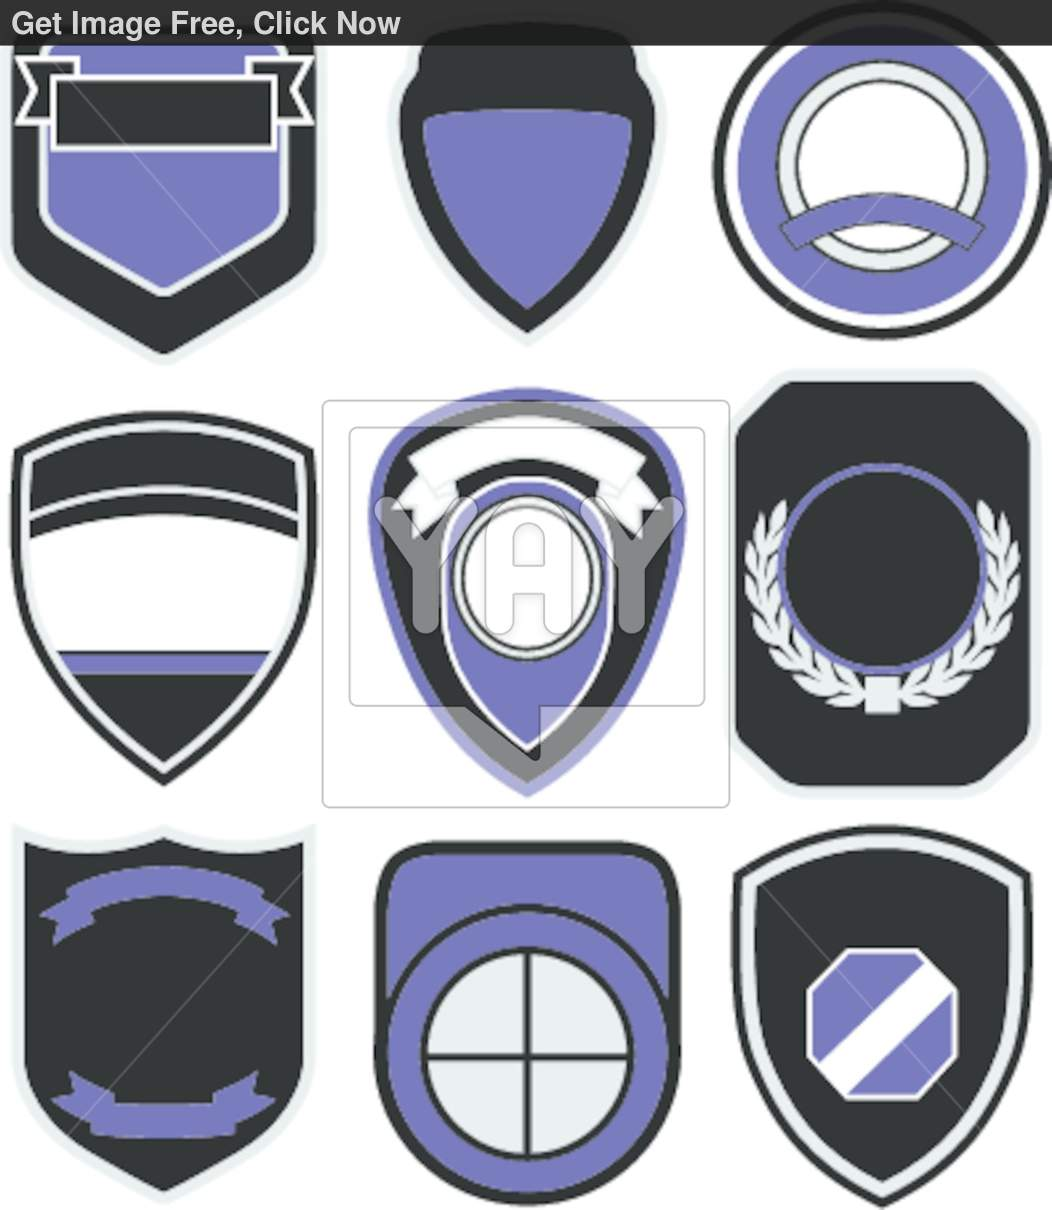 Security Badge Template Images Security ID Badge Template - Ring security badge template